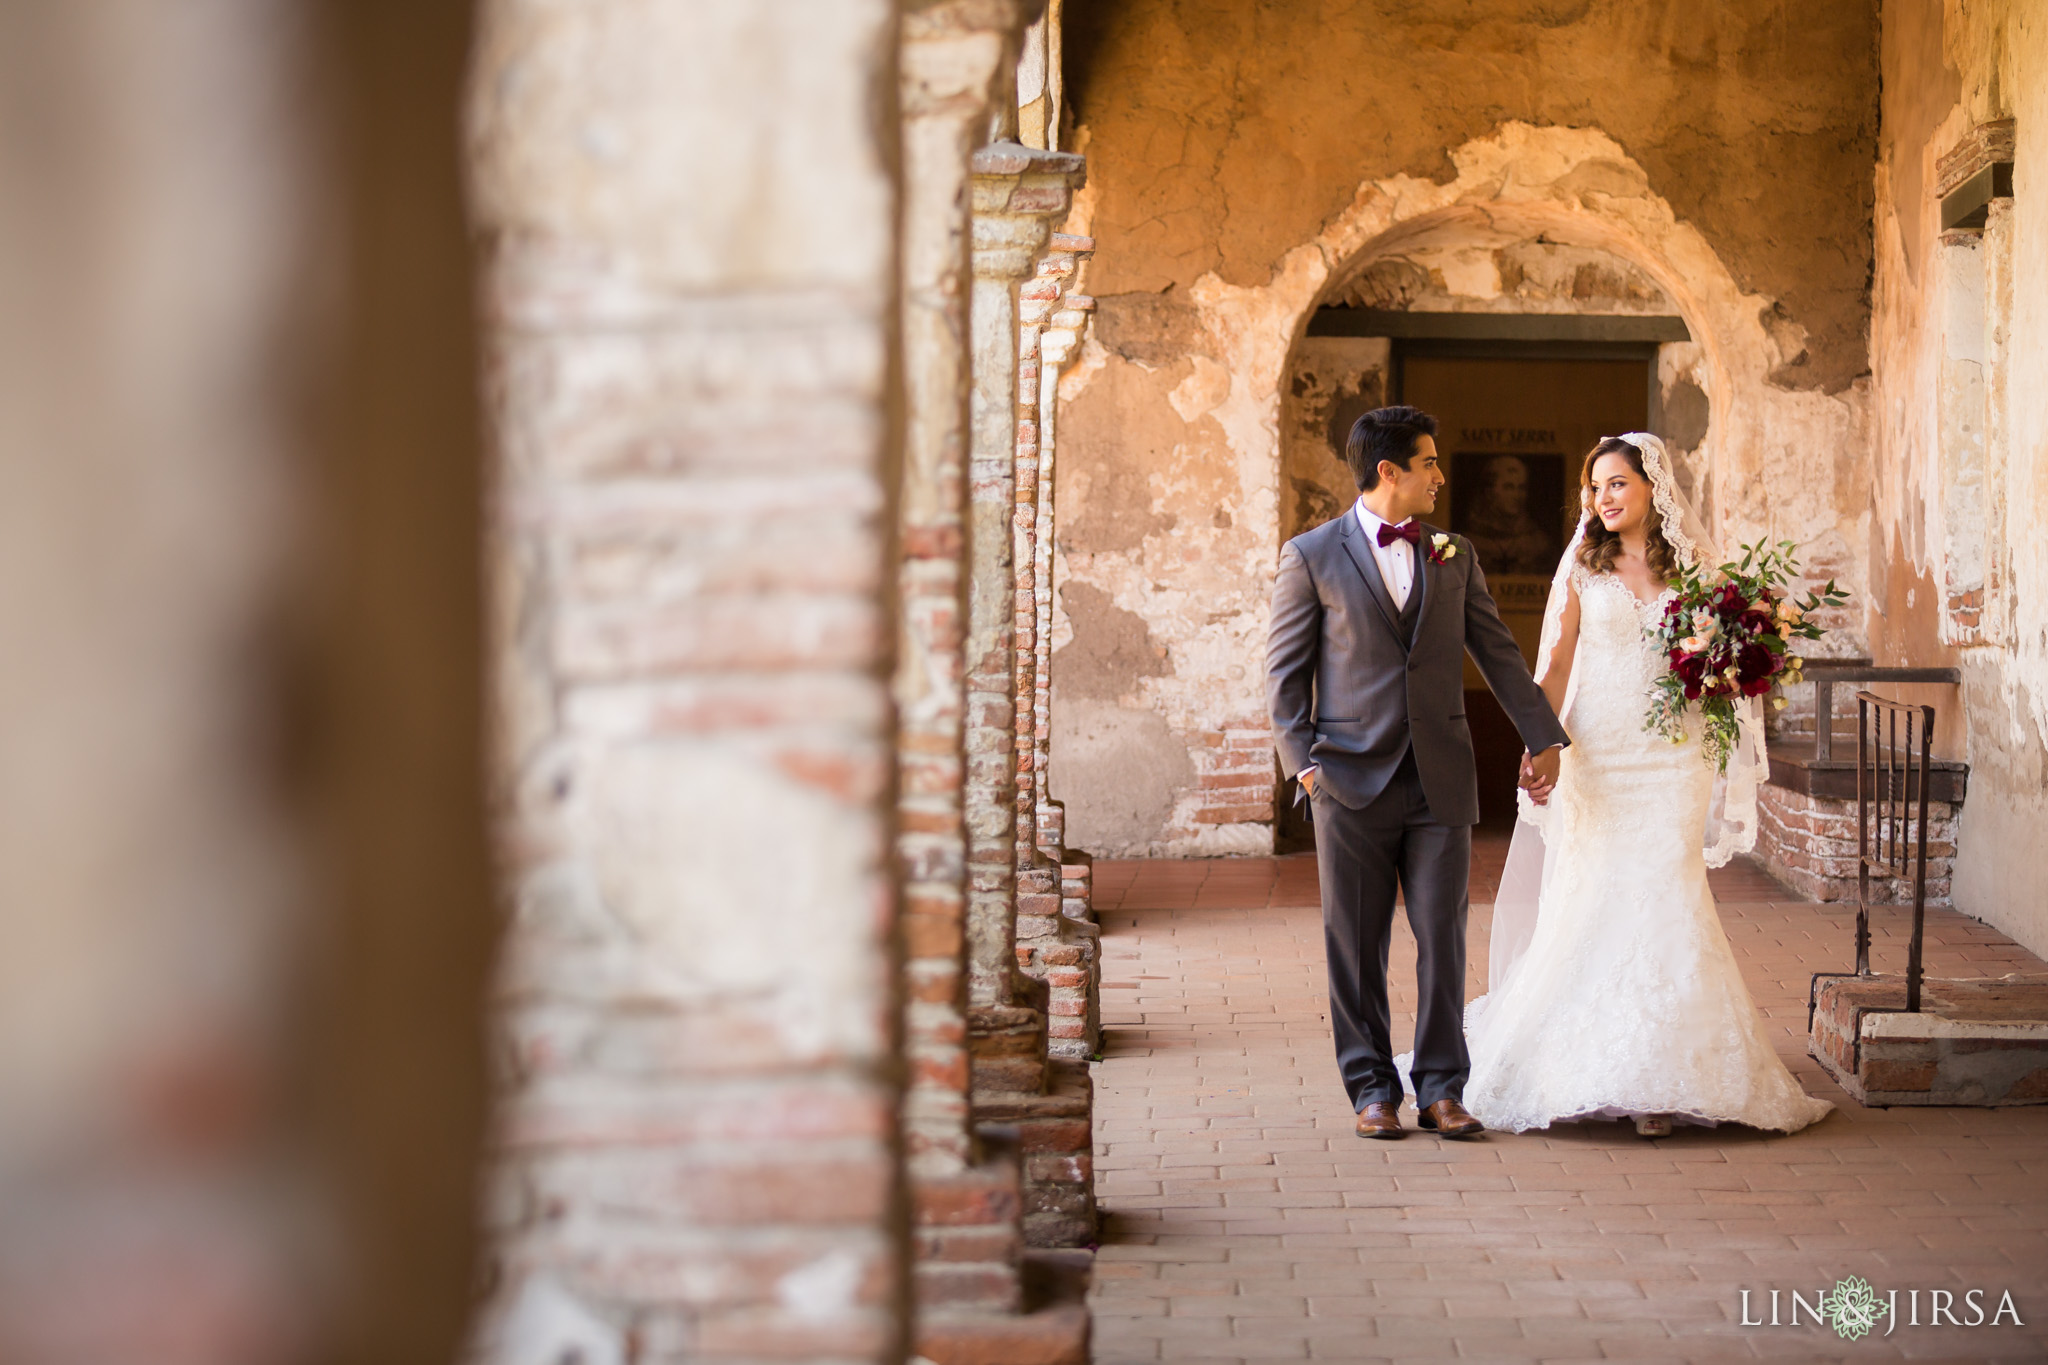 21 mission basilica san juan capistrano wedding photography